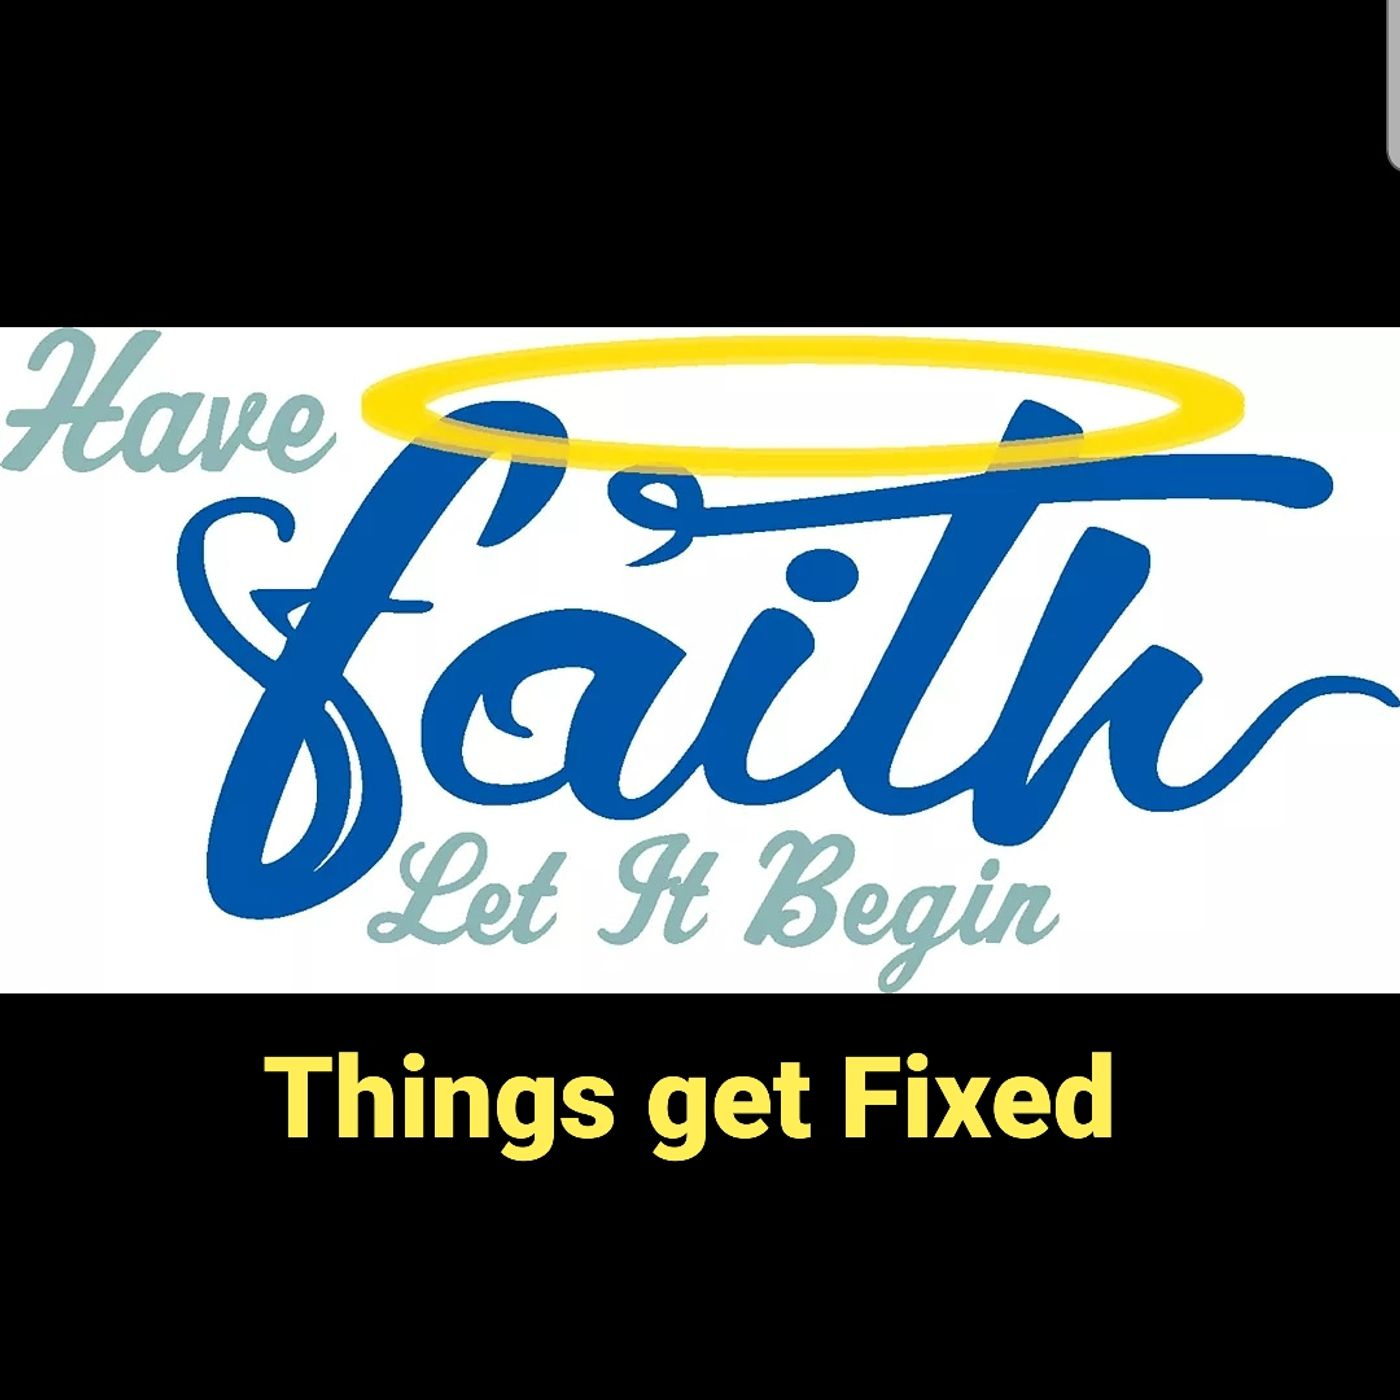 Things get Fixed